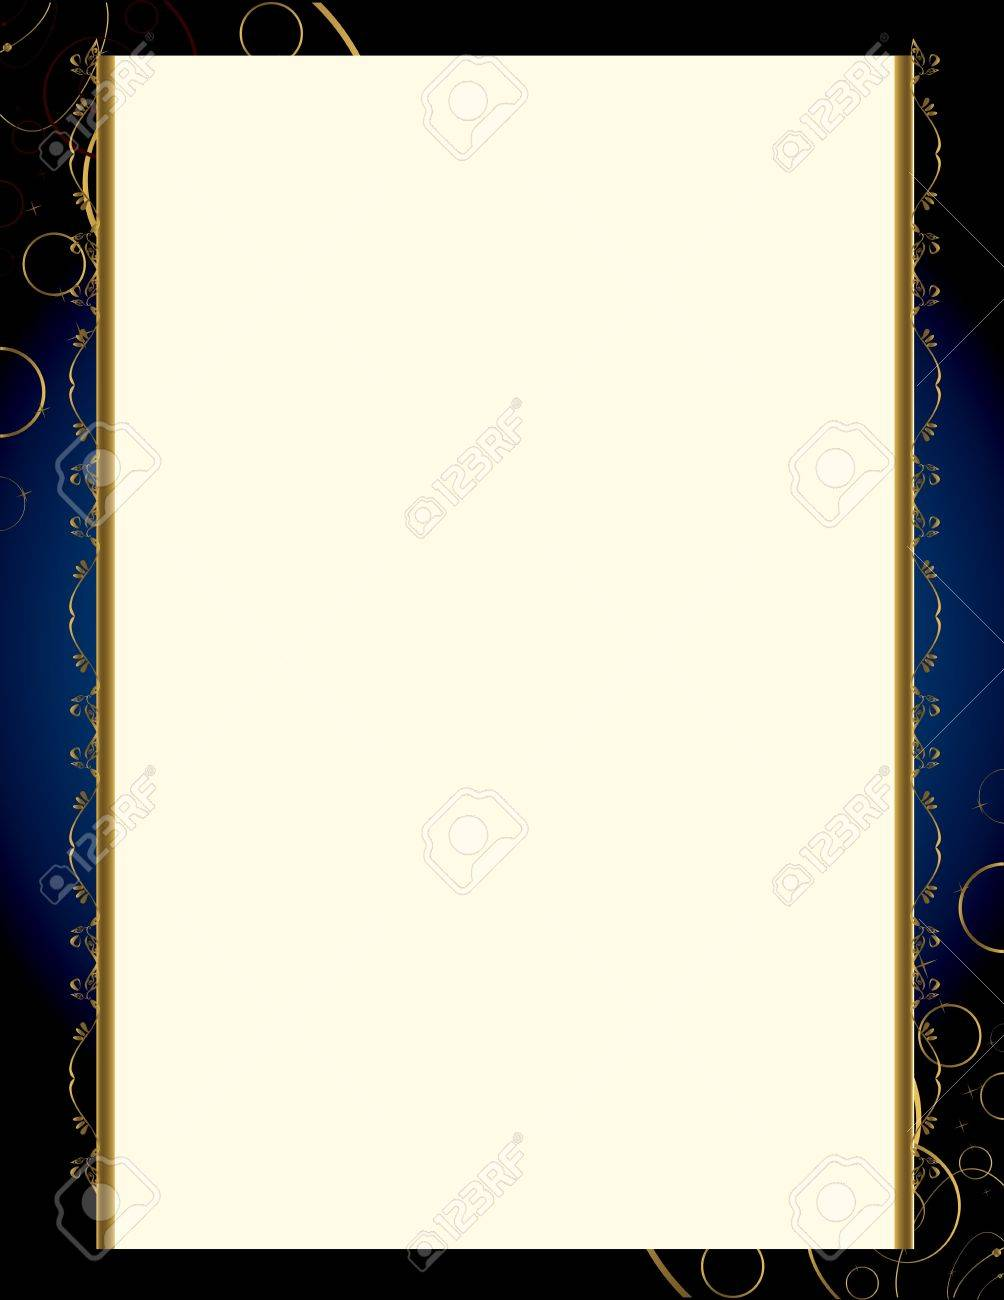 A blue background with and elegant blank frame design Stock Vector - 7315157